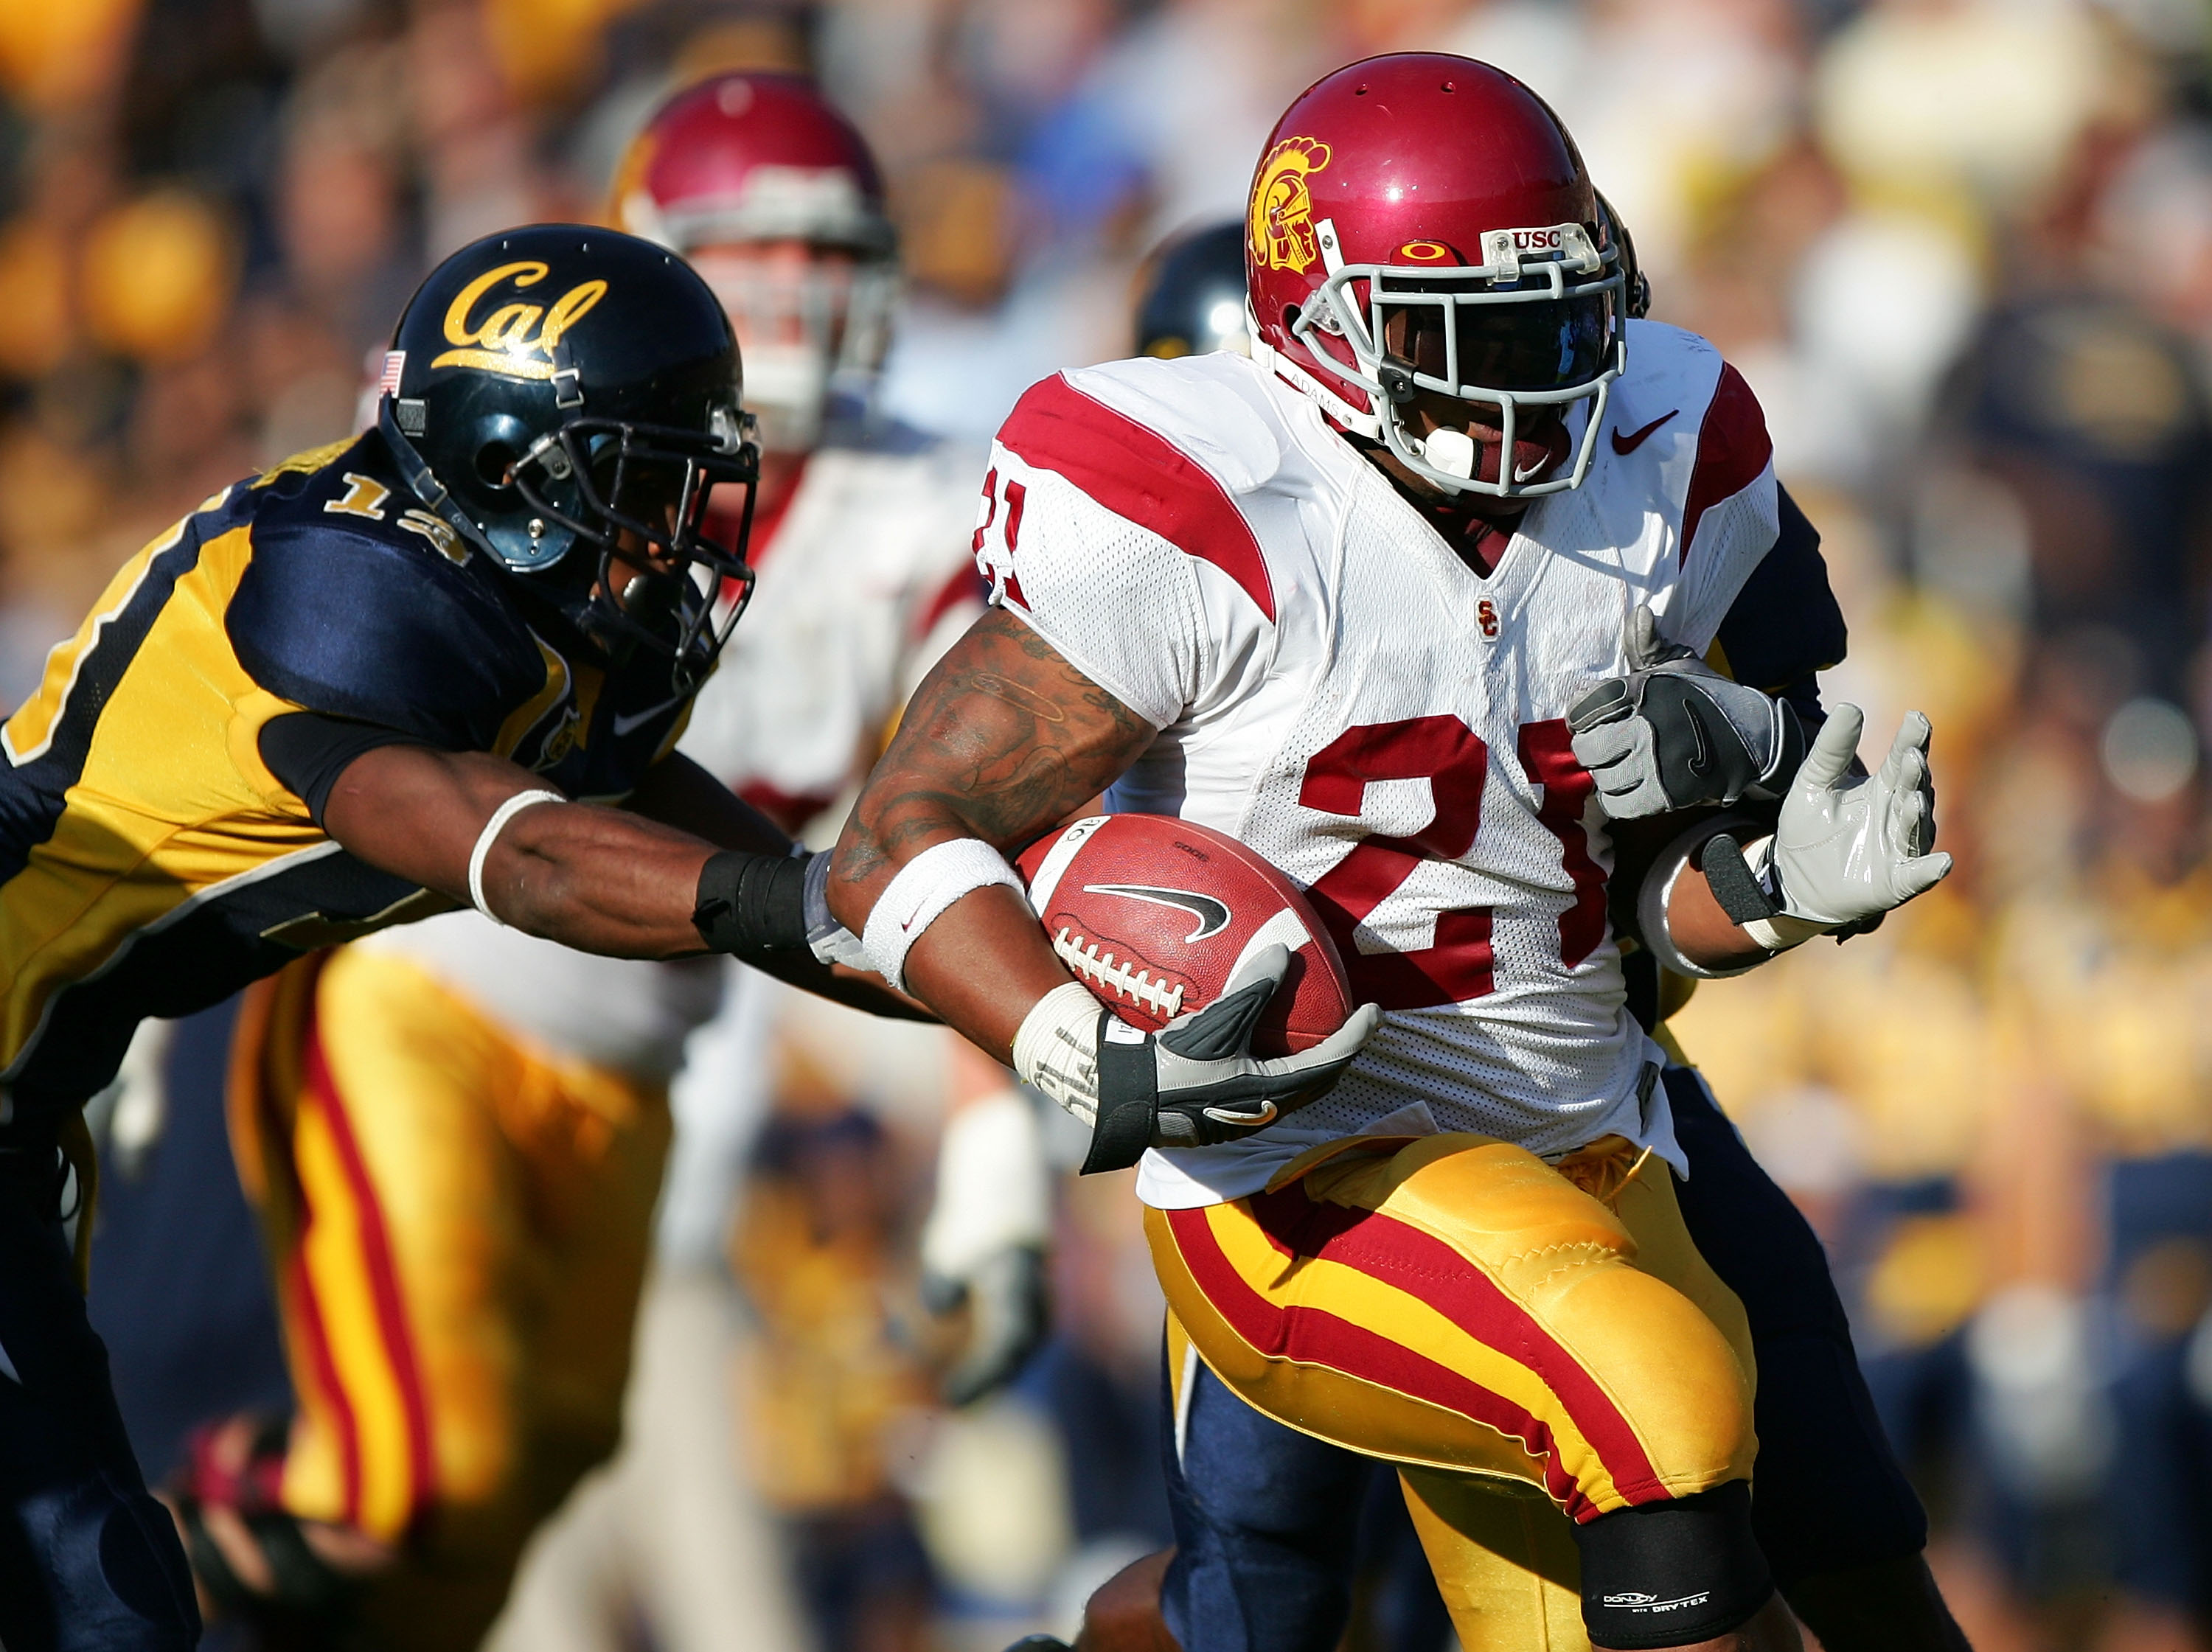 BERKELEY, CA - NOVEMBER 12:  LenDale White #21 of the USC Trojans runs with the ball against Daymeion Hughes #13 of the California Golden Bears at Memorial Stadium on November 12, 2005 in Berkeley, California.  (Photo by Jed Jacobsohn/Getty Images)